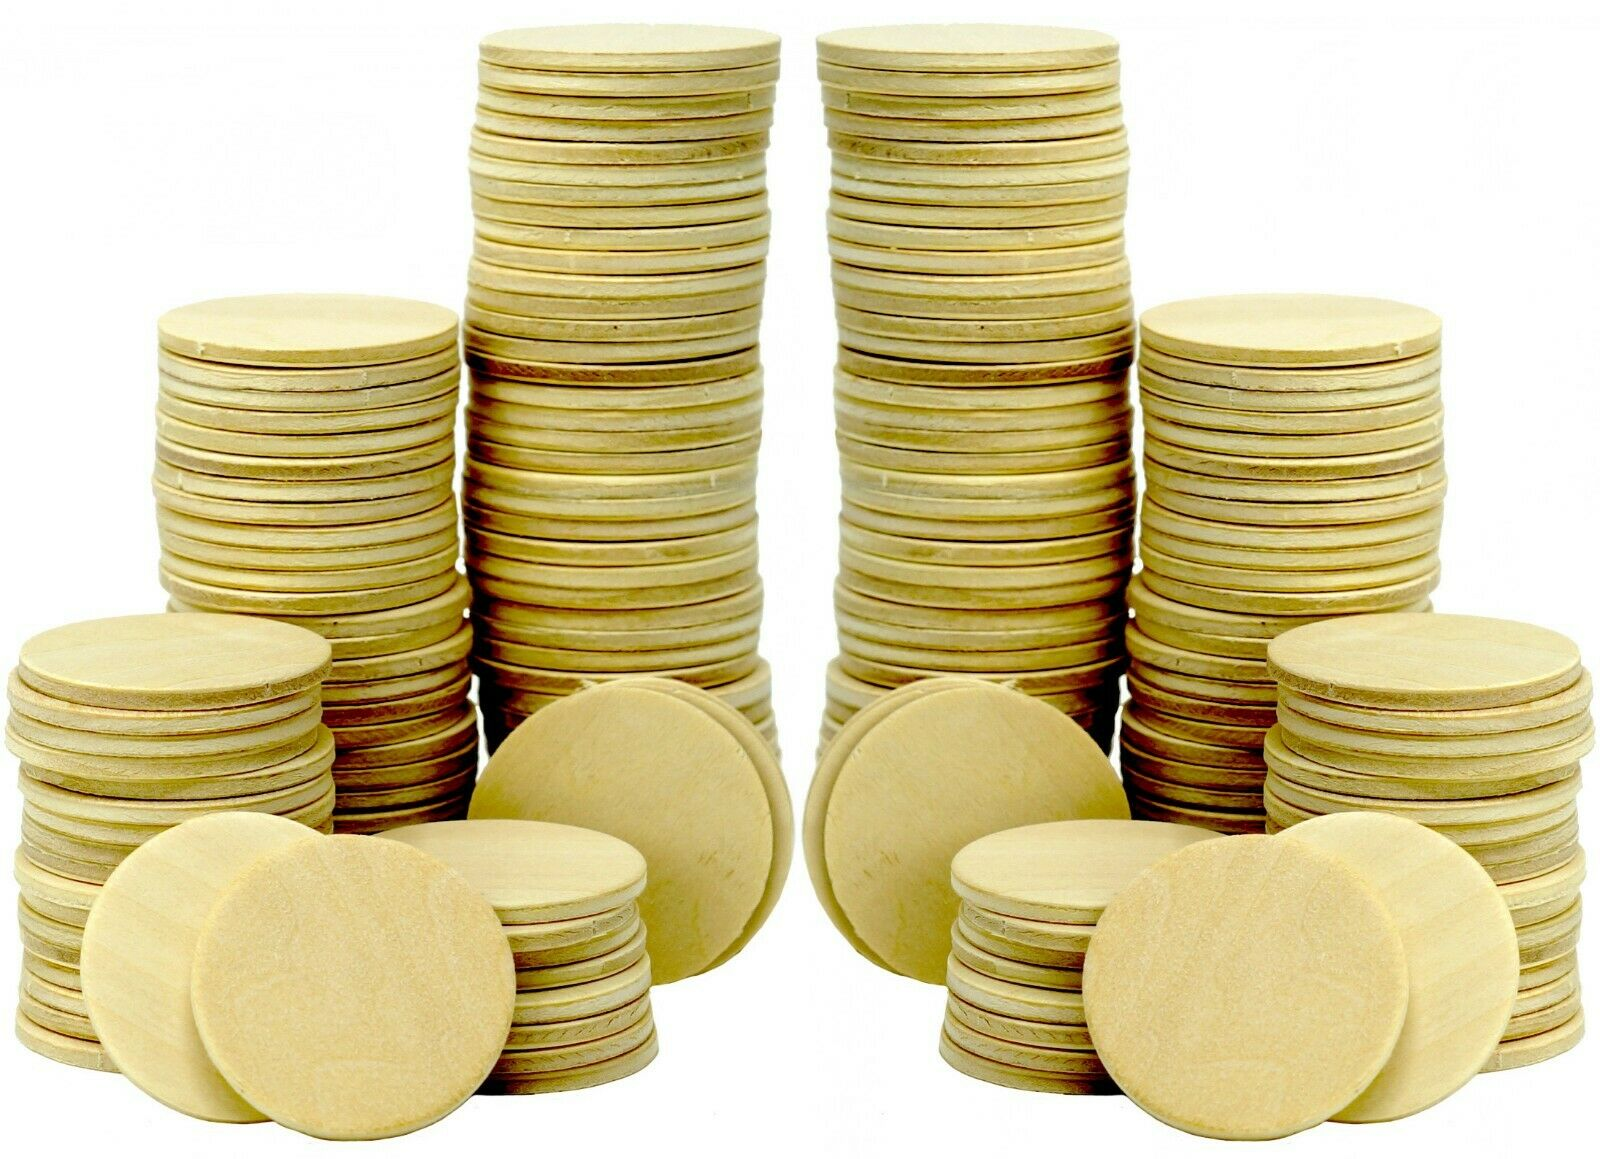 200 Pack -1.5 Inch Round Wood Cutout Circle Chips for Crafts, Games, Ornaments Crafting Pieces